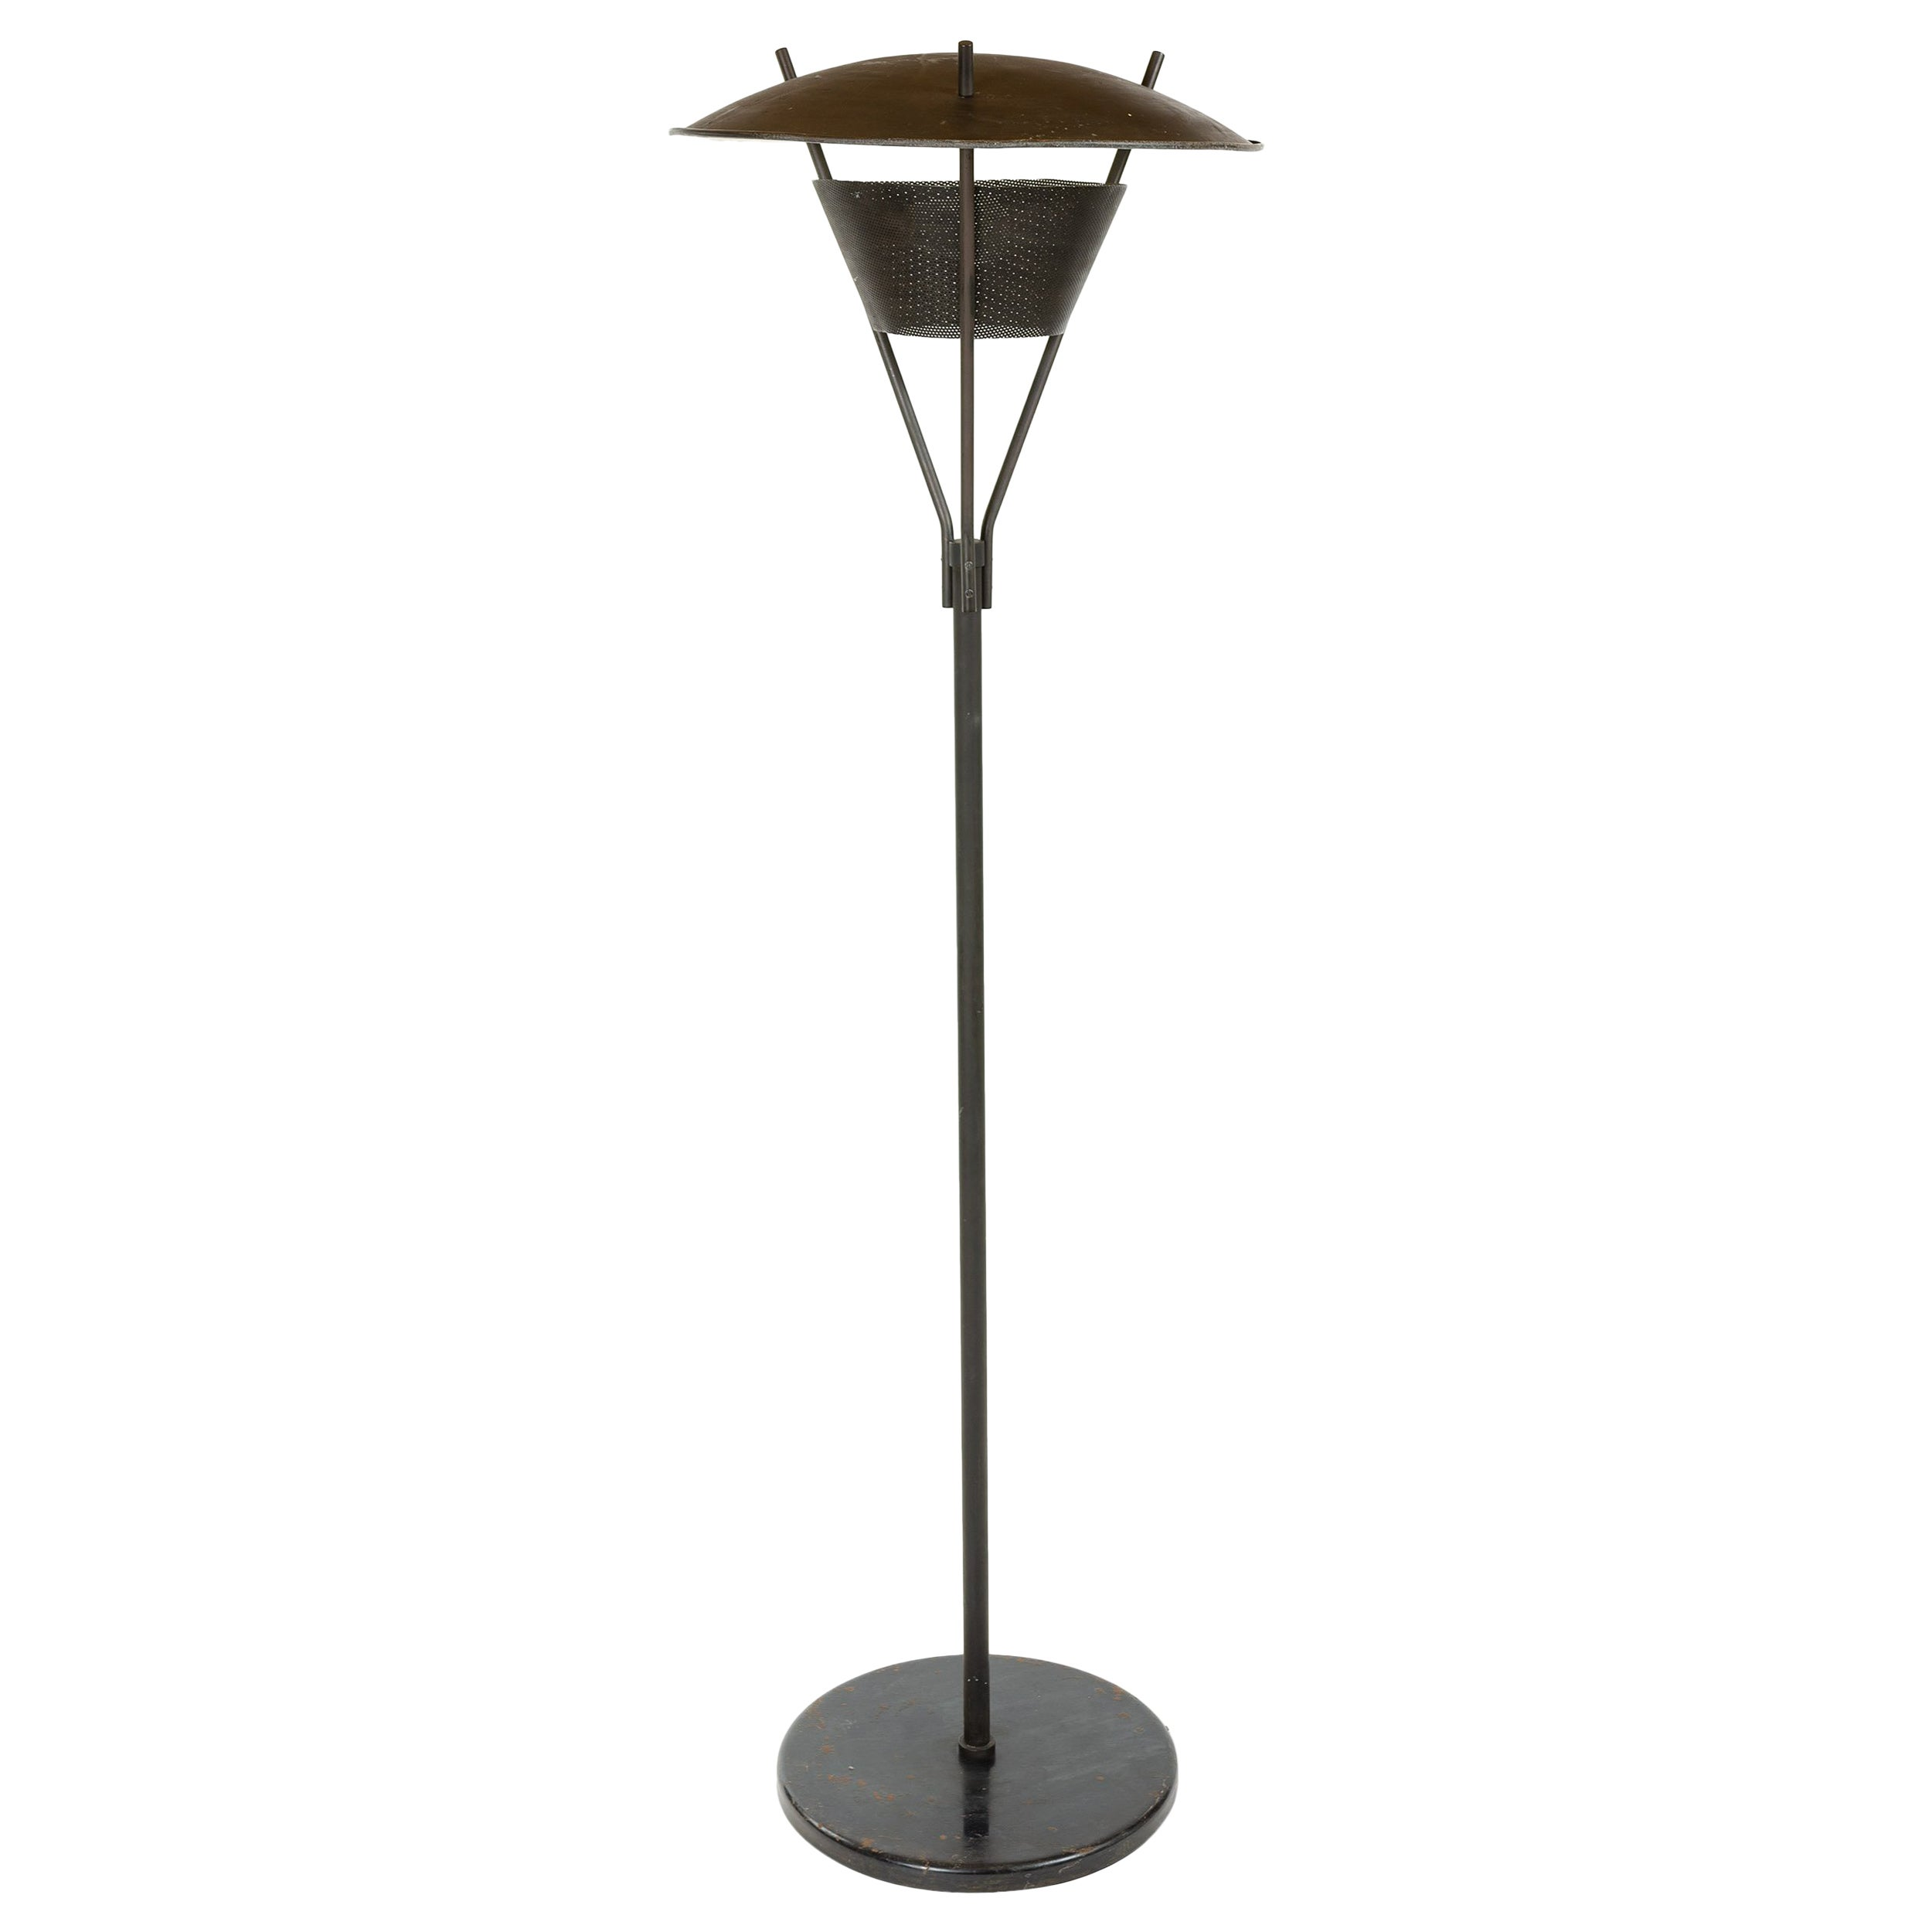 1950s Black Enameled Steel & Brass Floor Lamp by Gerald Thurston for Lightolier